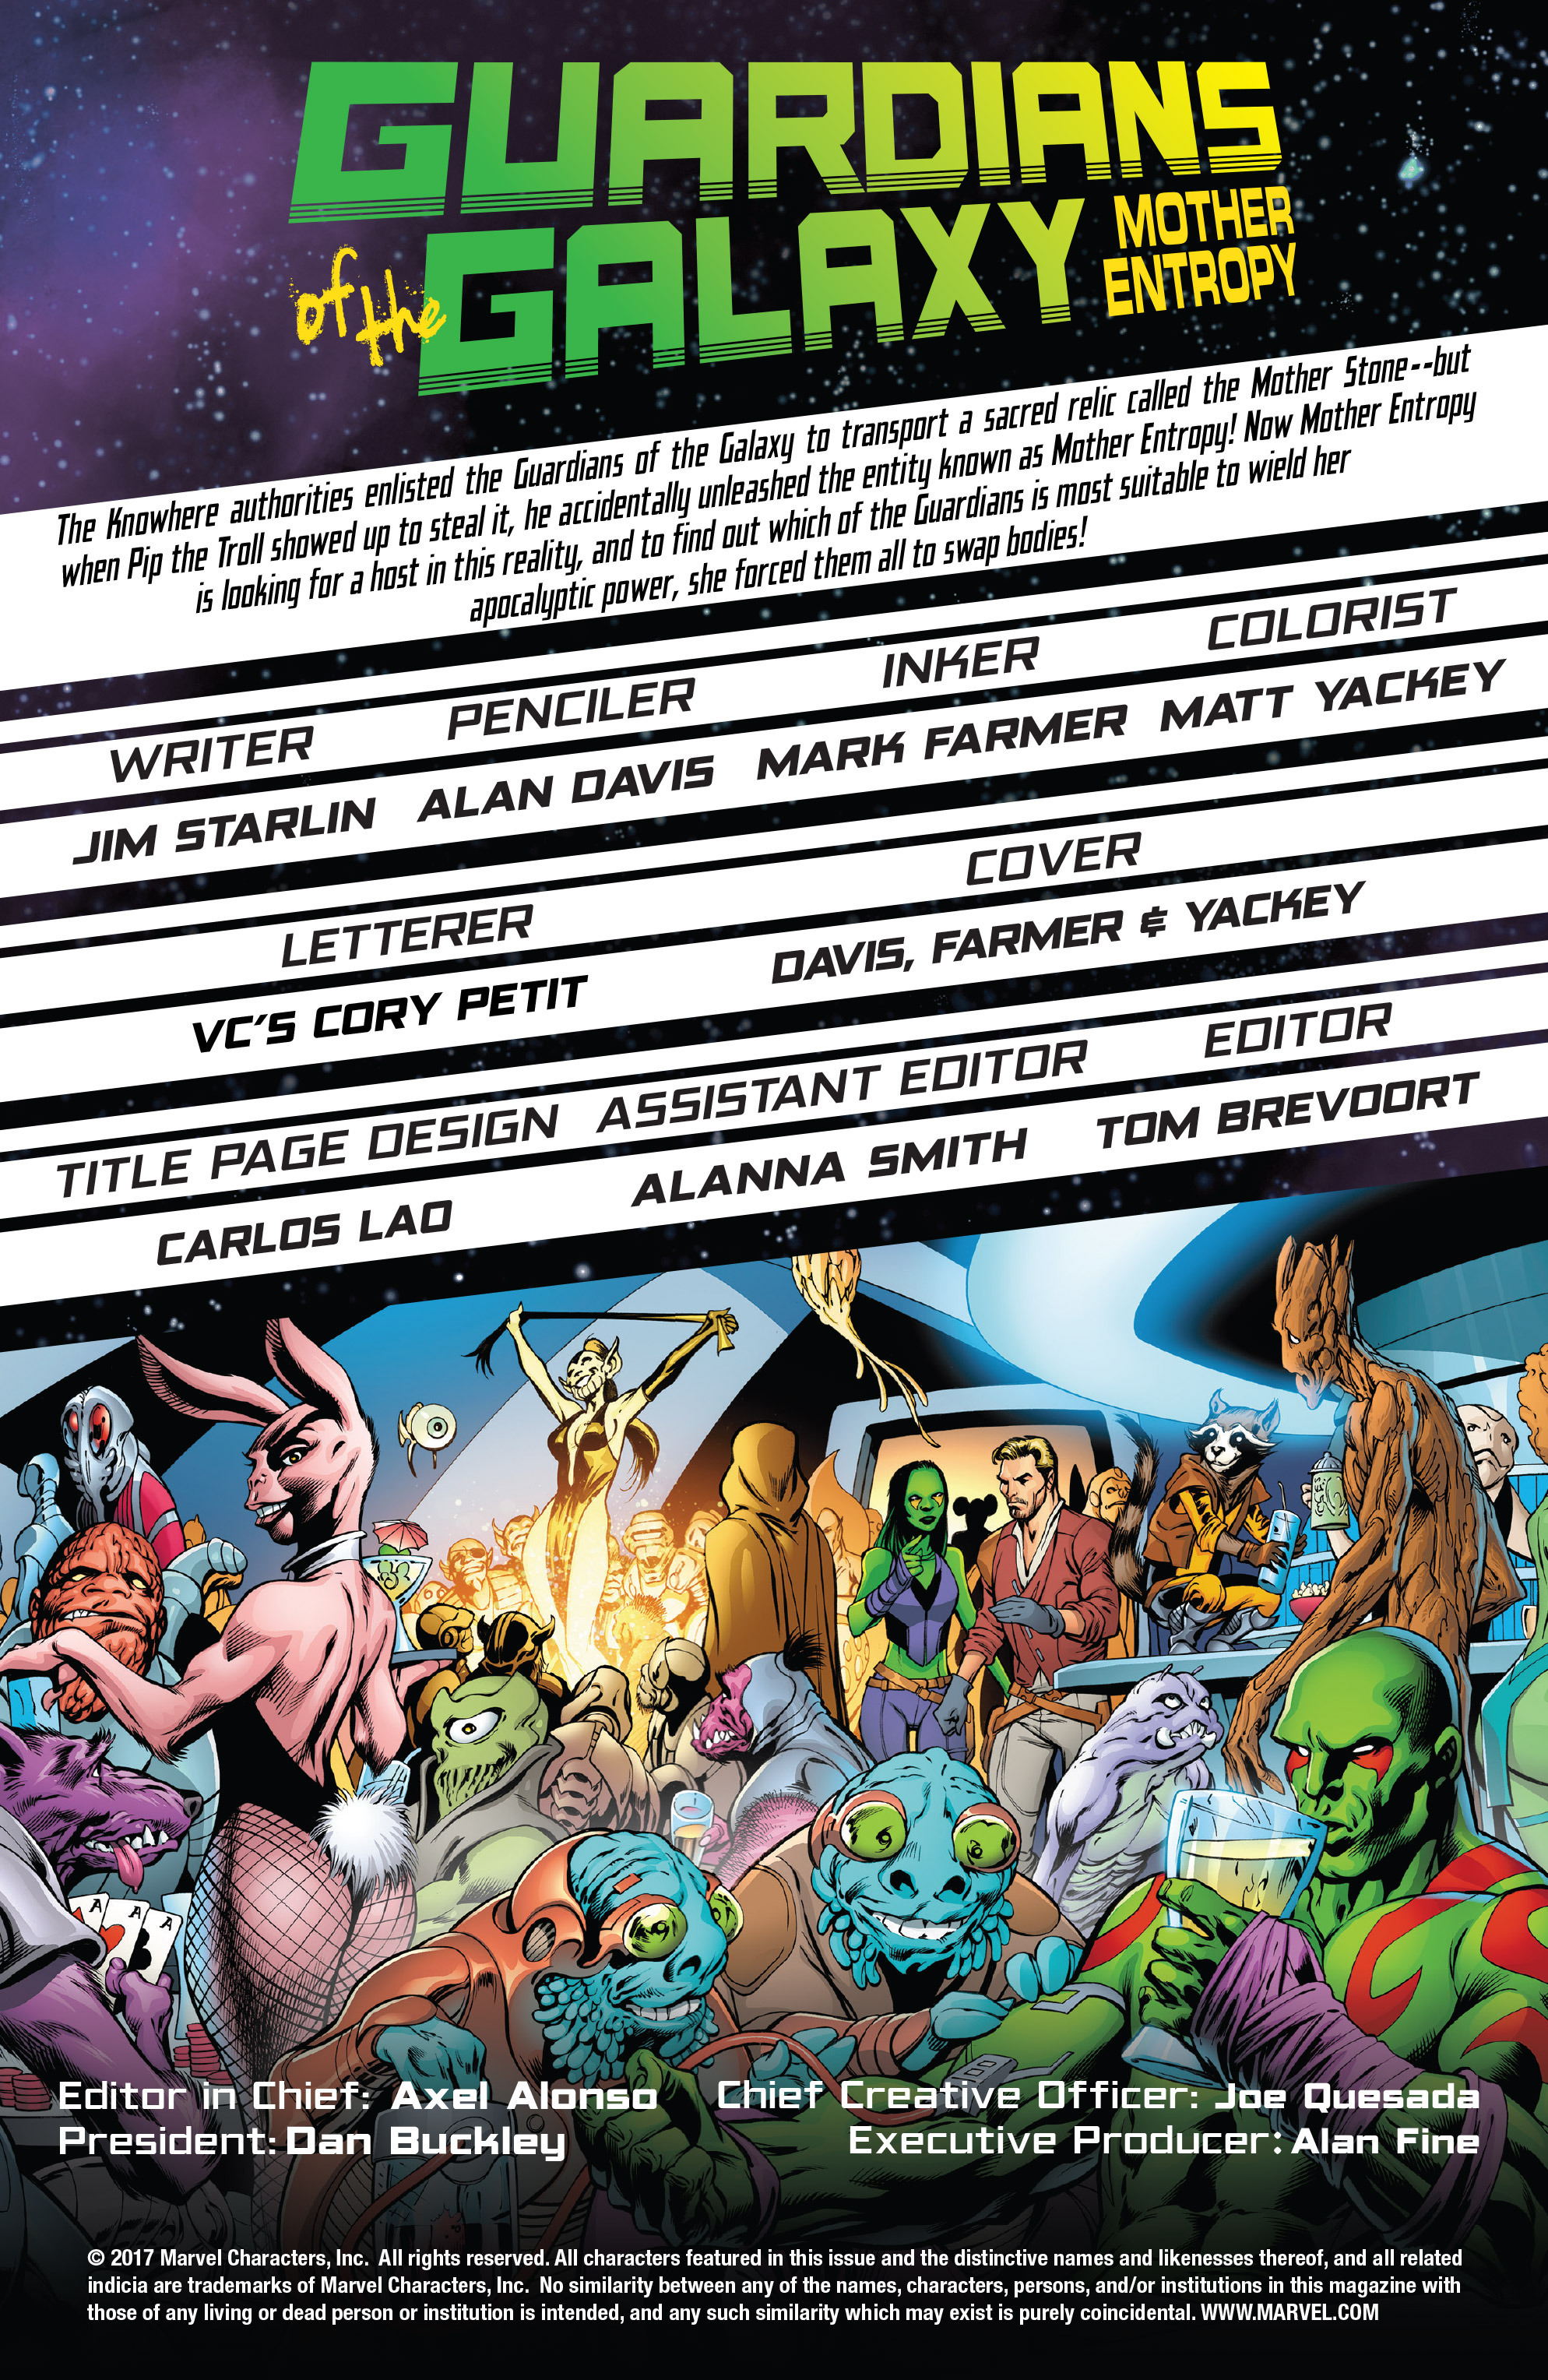 Read online Guardians of the Galaxy: Mother Entropy comic -  Issue #3 - 2